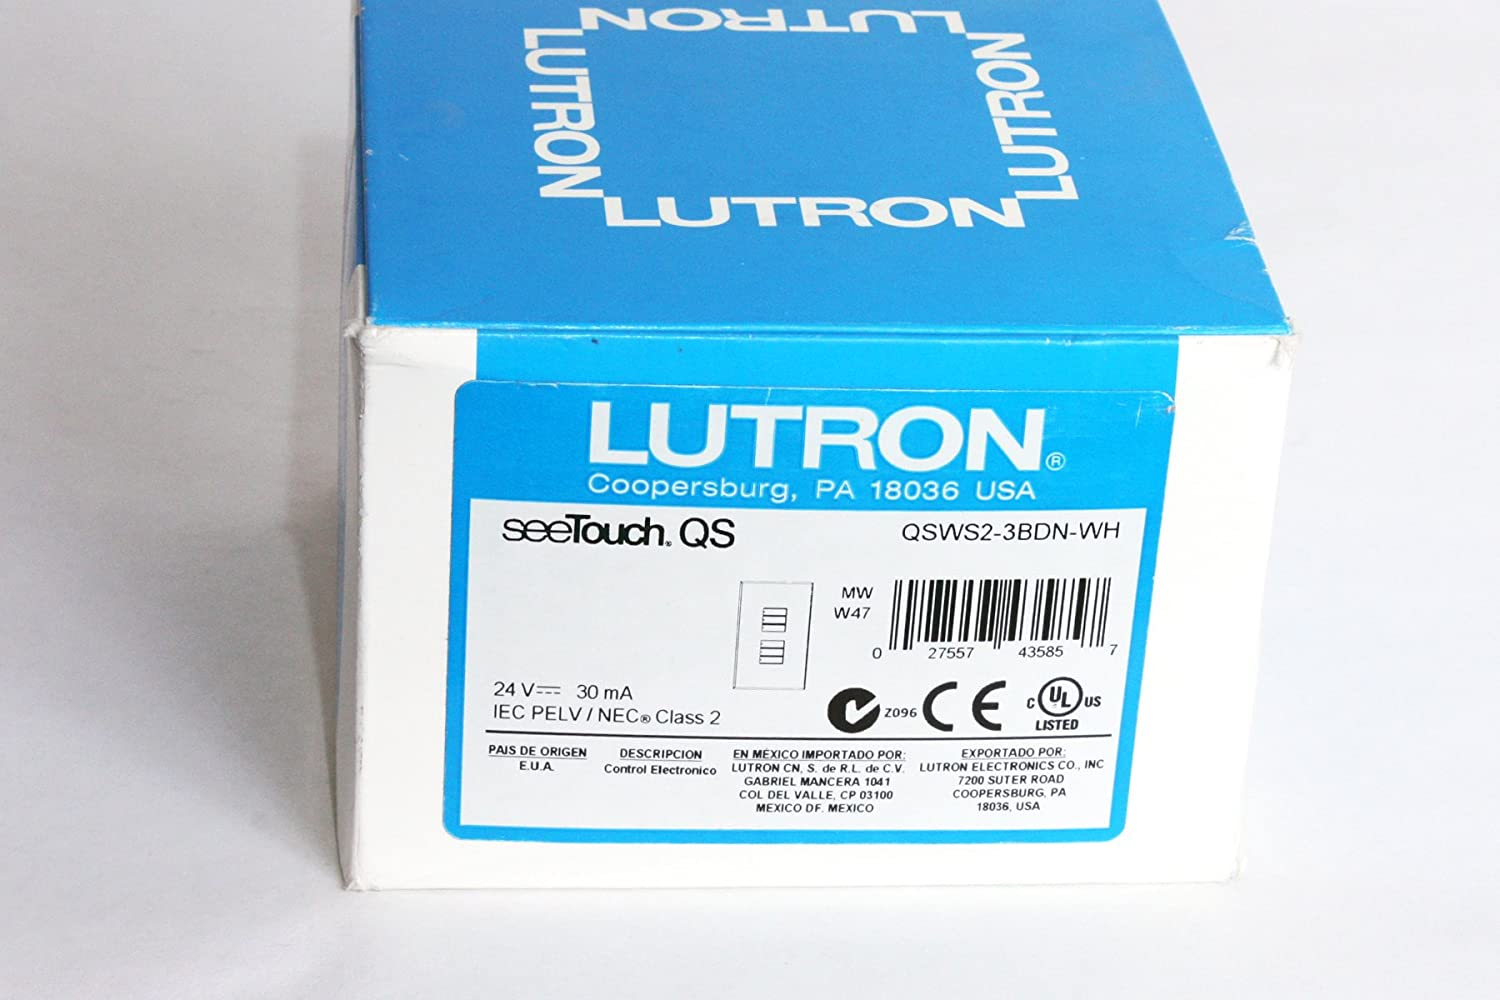 Amazon.com: Lutron QSWS2-3BDN-WH Electrical Distribution Wall Plate ...